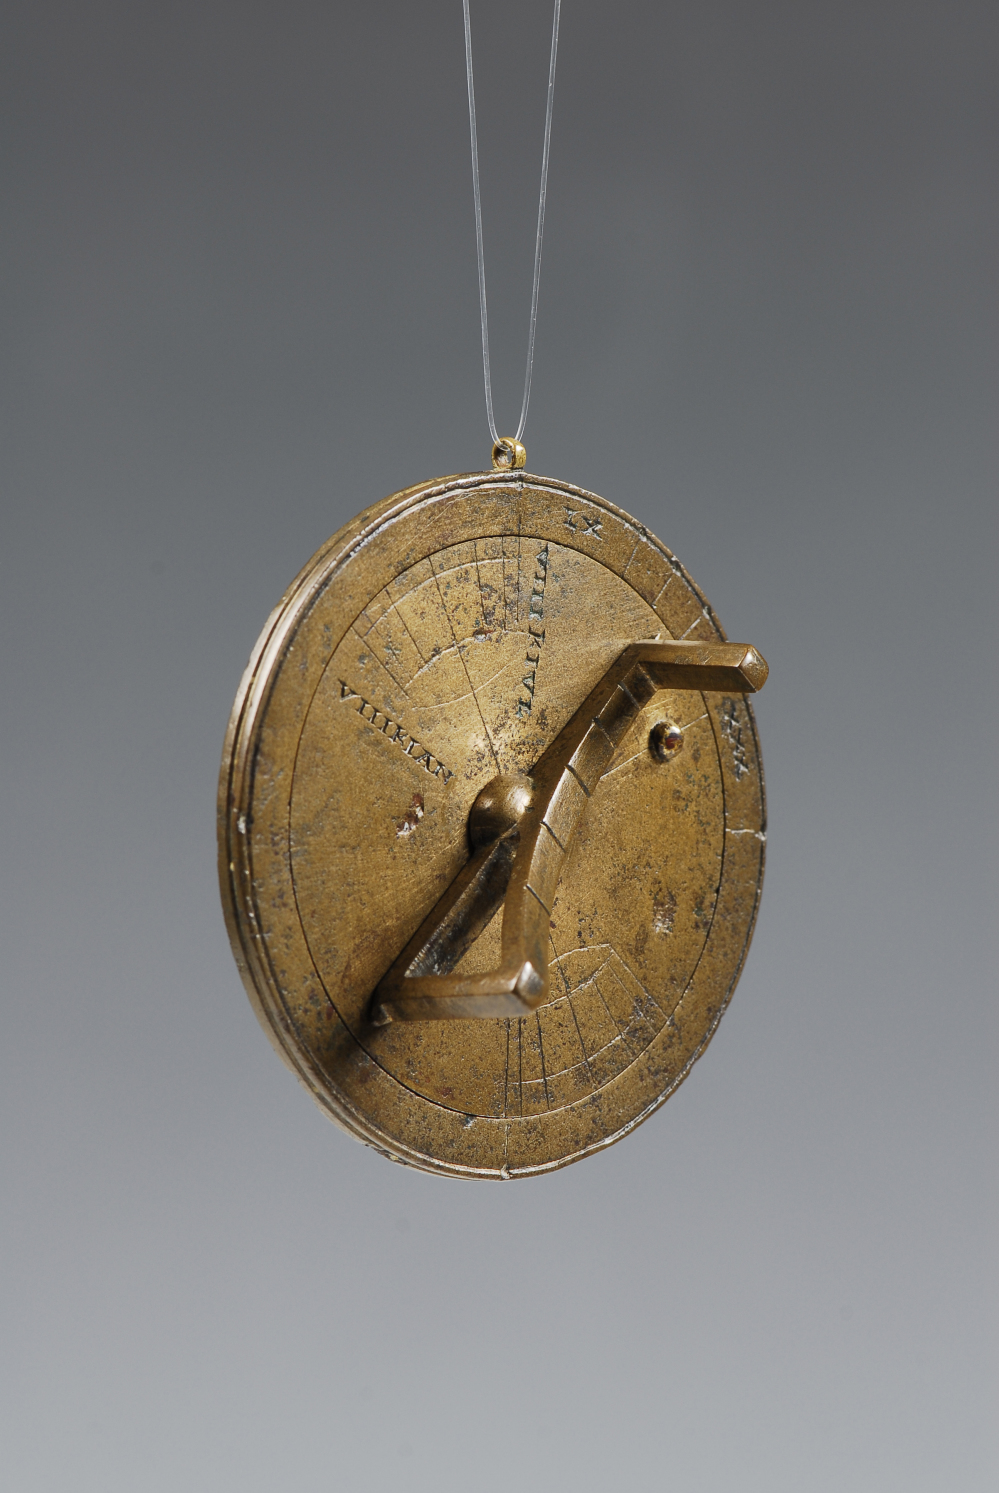 preview image for Vertical Disc Dial, Roman, c. 250 A.D. ?